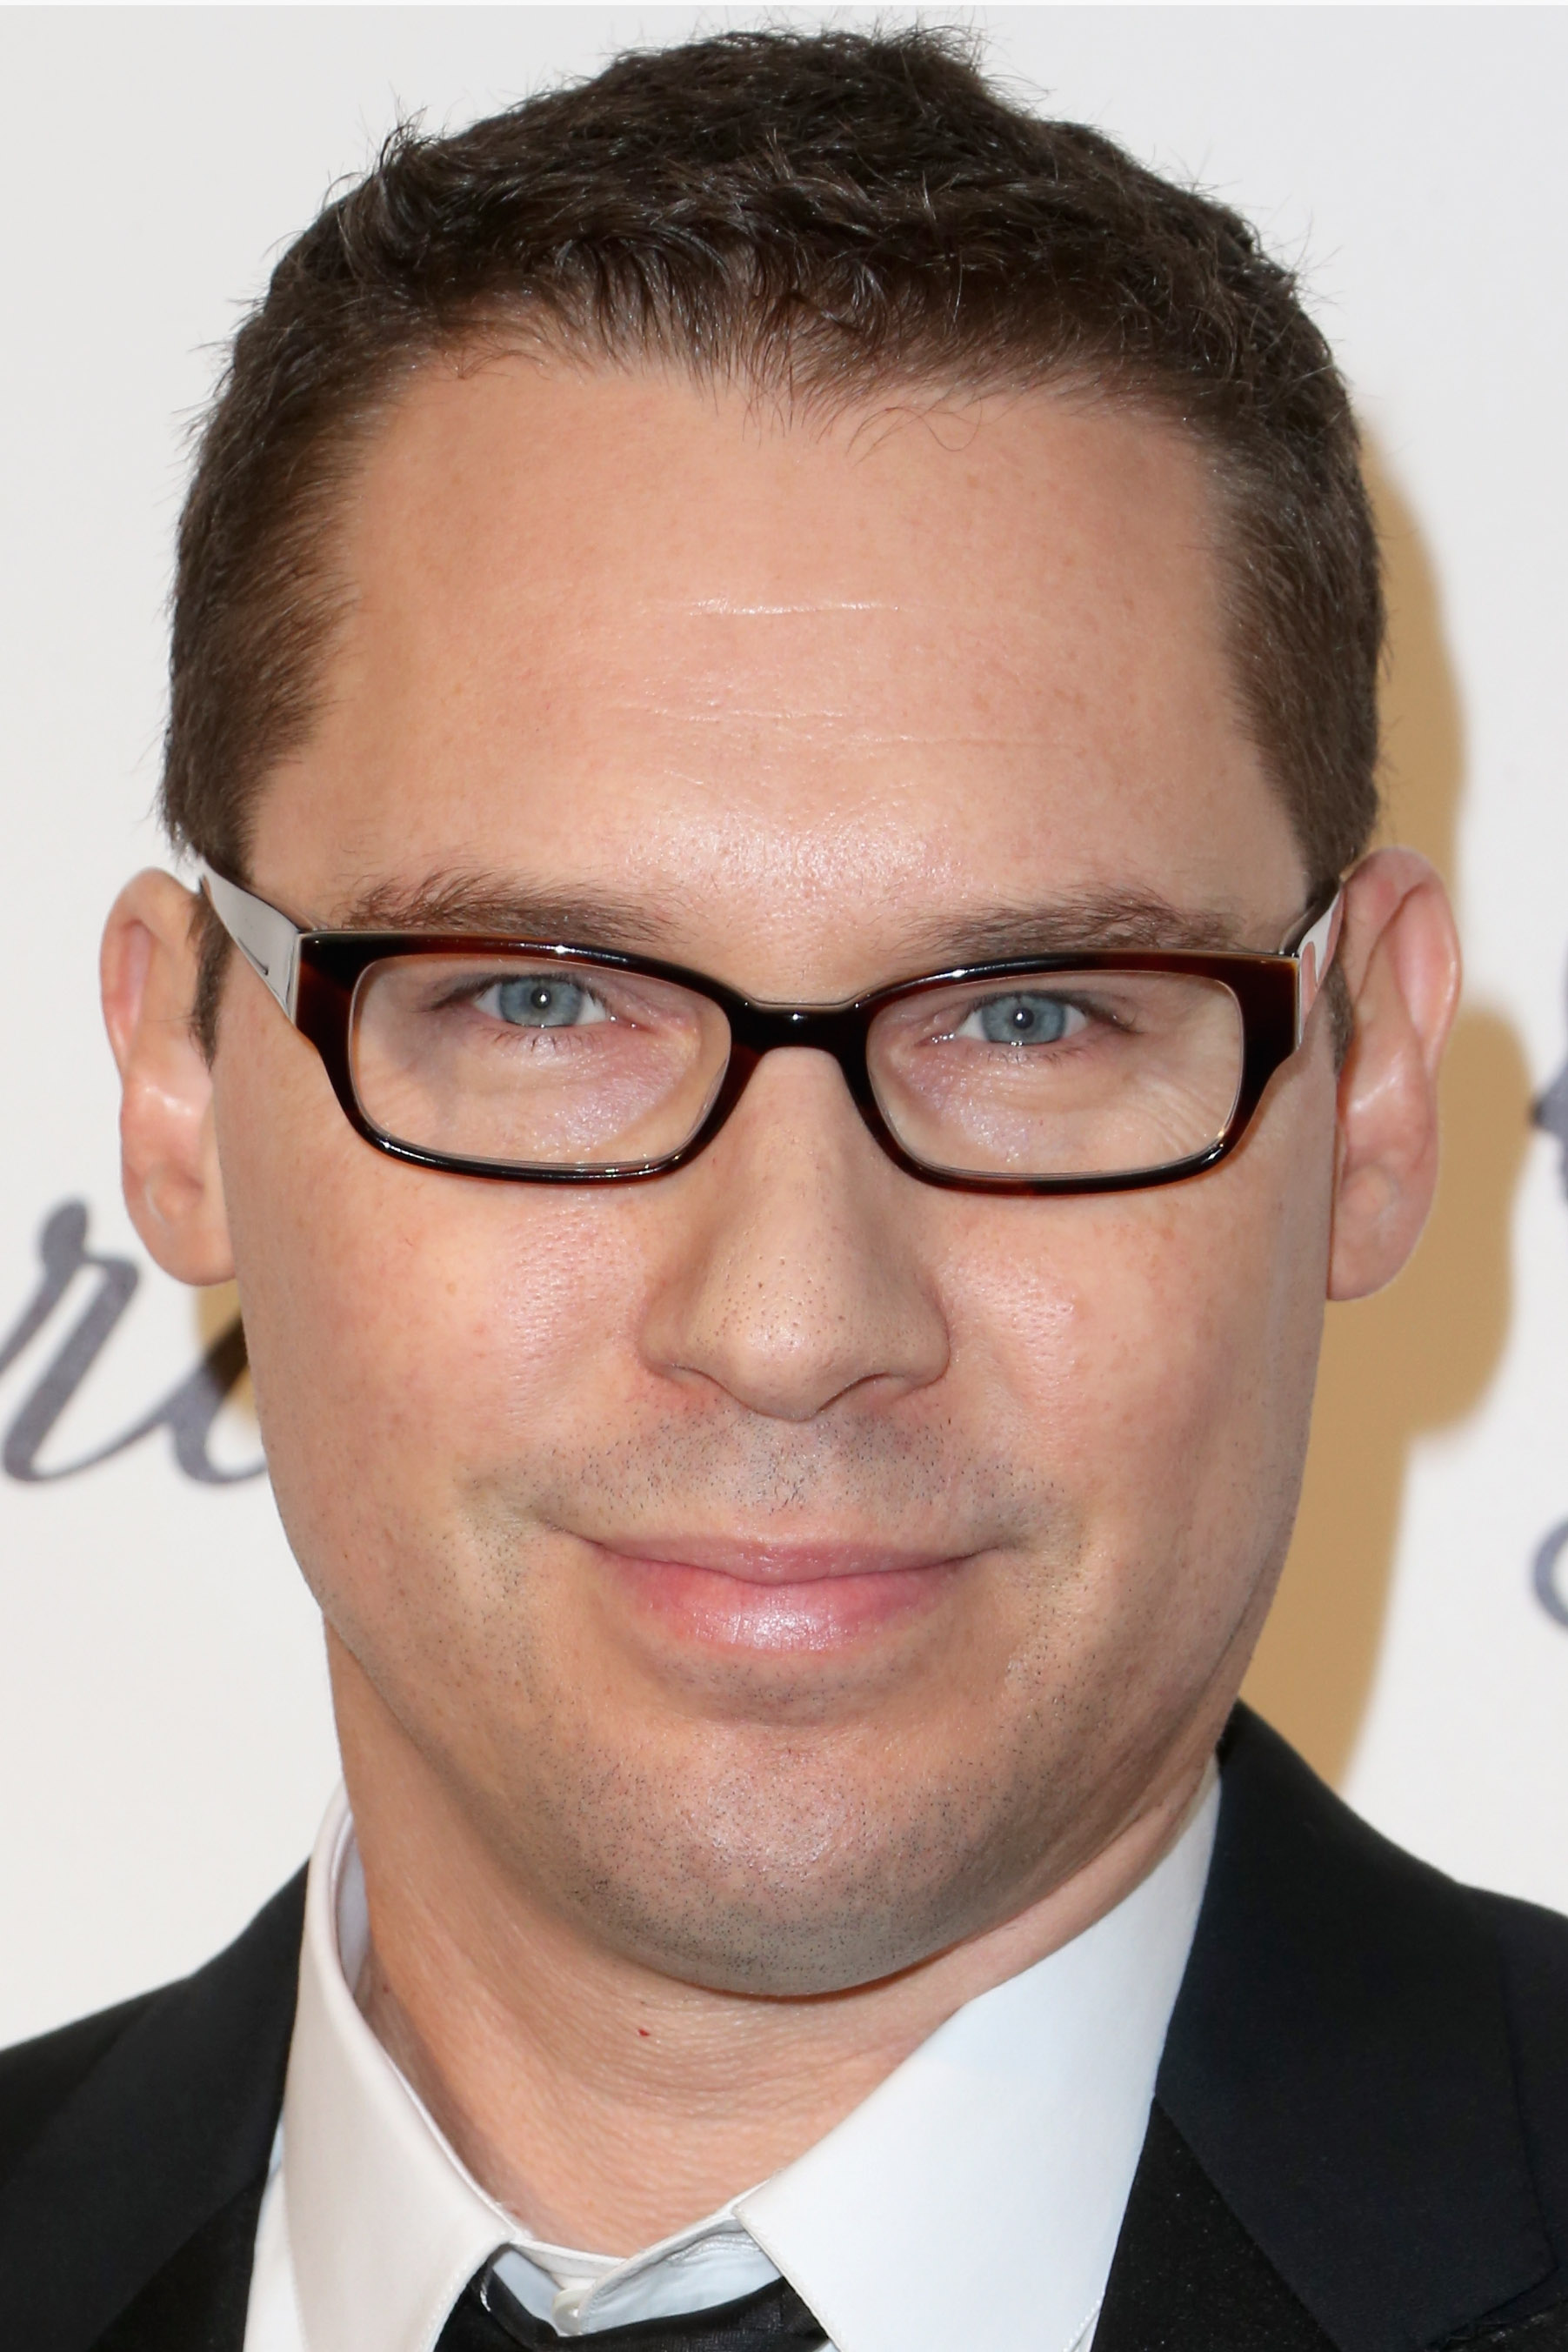 Director Bryan Singer attends the 22nd Annual Elton John AIDS Foundation's Oscar Viewing Party on March 2, 2014 in Los Angeles.